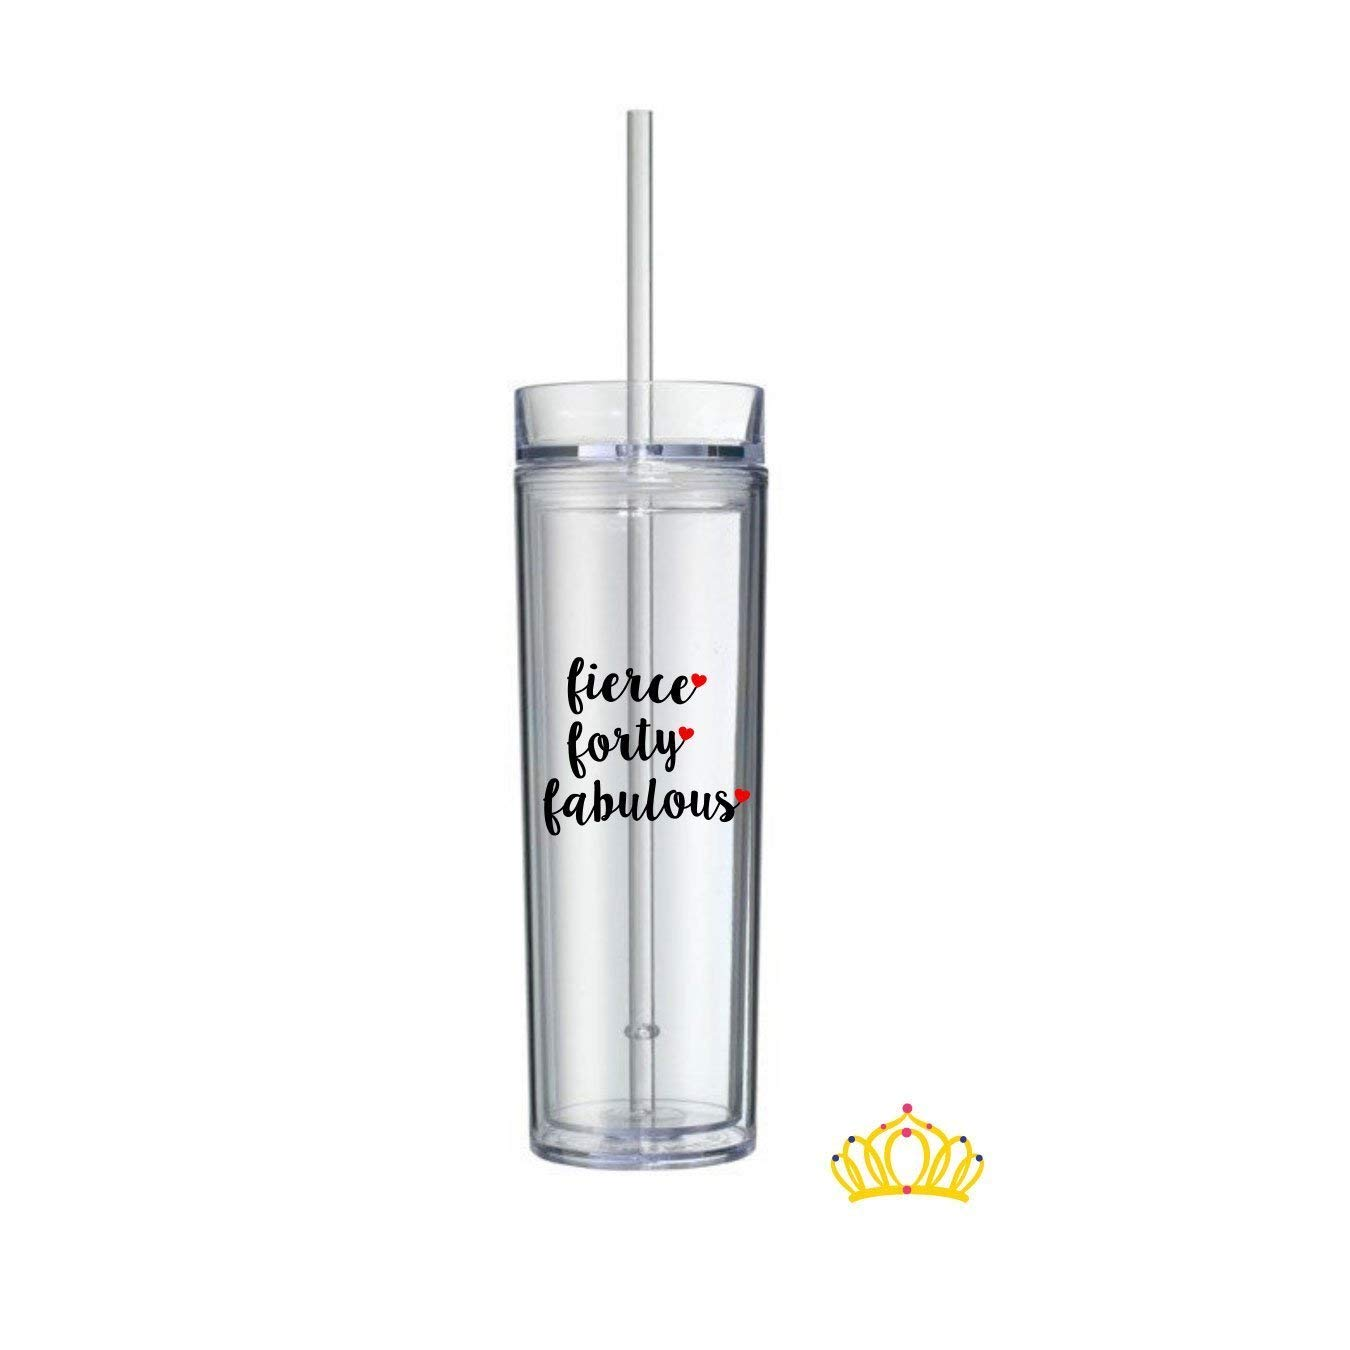 Fierce Forty Fabulous Water Bottle, 40th Birthday Gift for Her - 16 oz, Double Wall, Clear